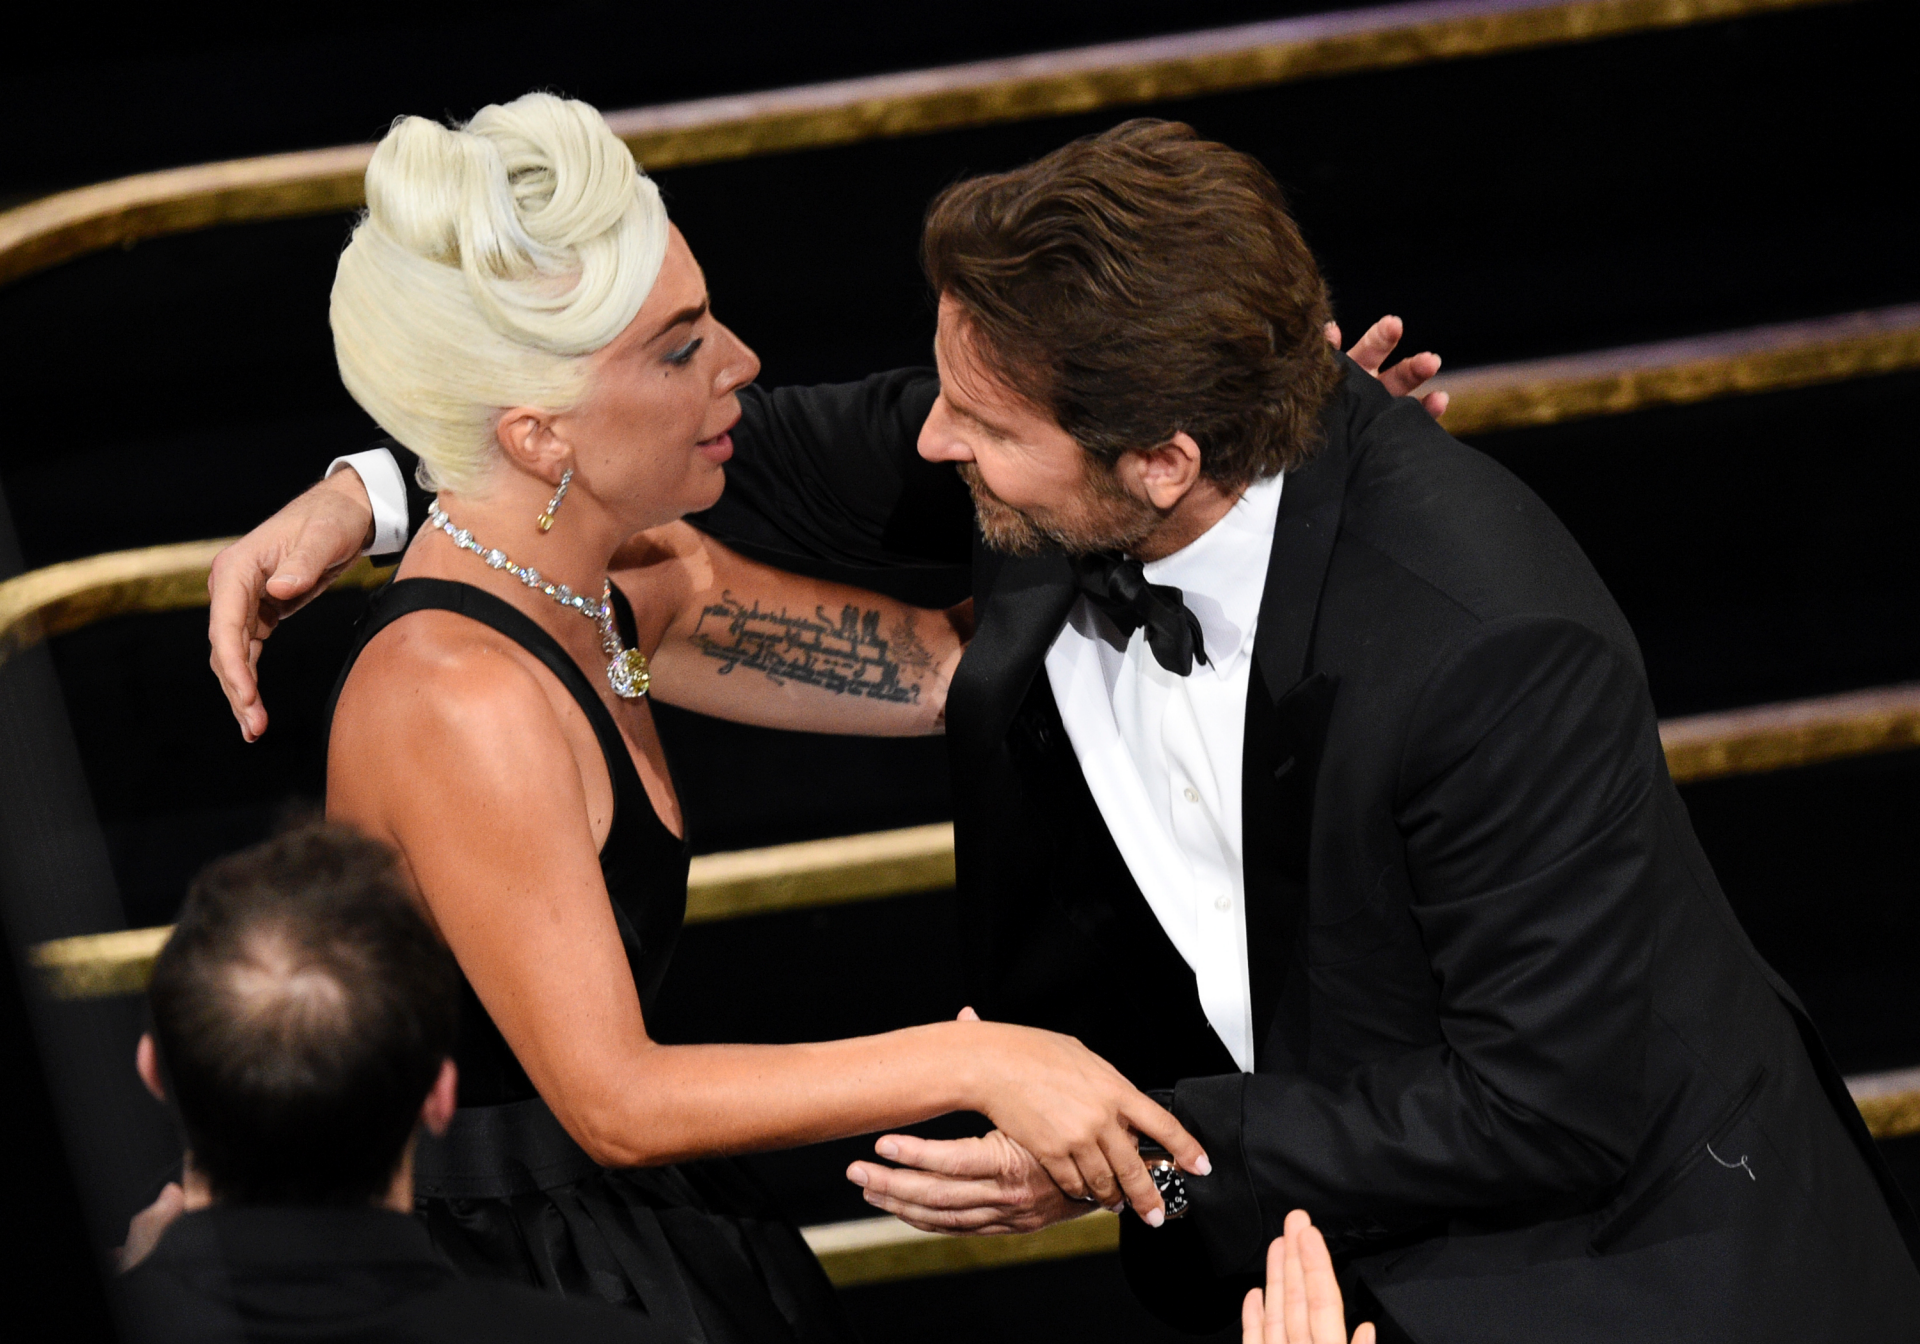 Lady Gaga posts about 'special' moment with Cooper during Academy Awards thumbnail